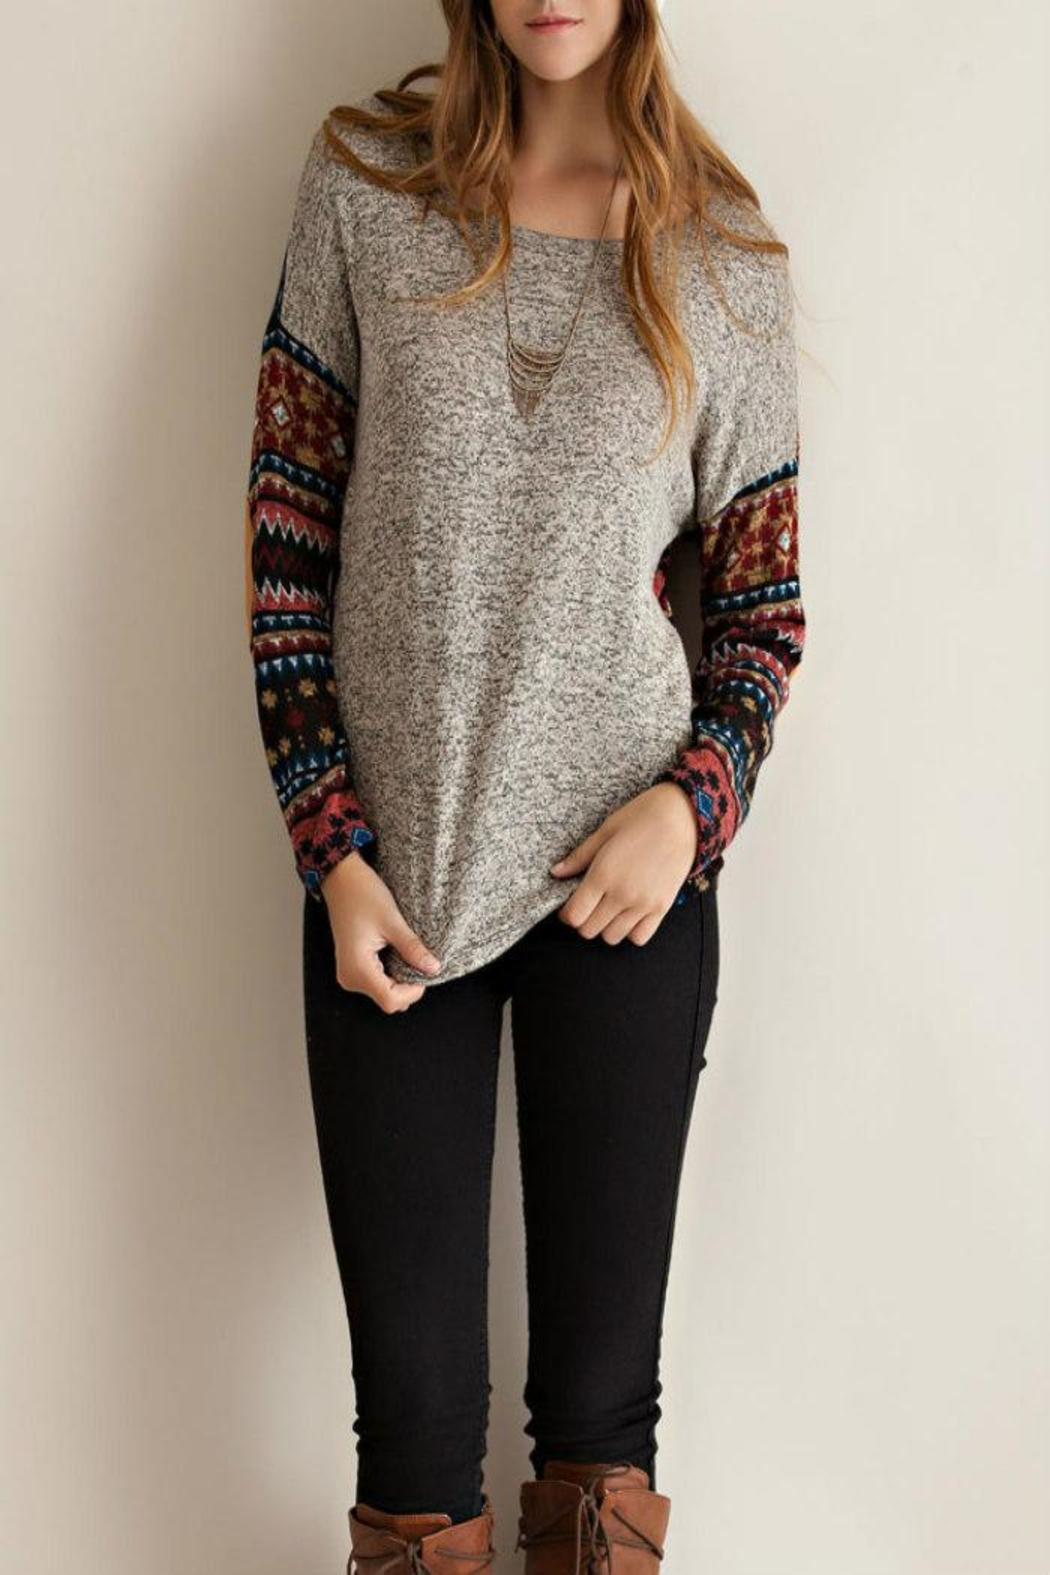 Entro Trendy Tribal Style Top From Mississippi By Exit 16